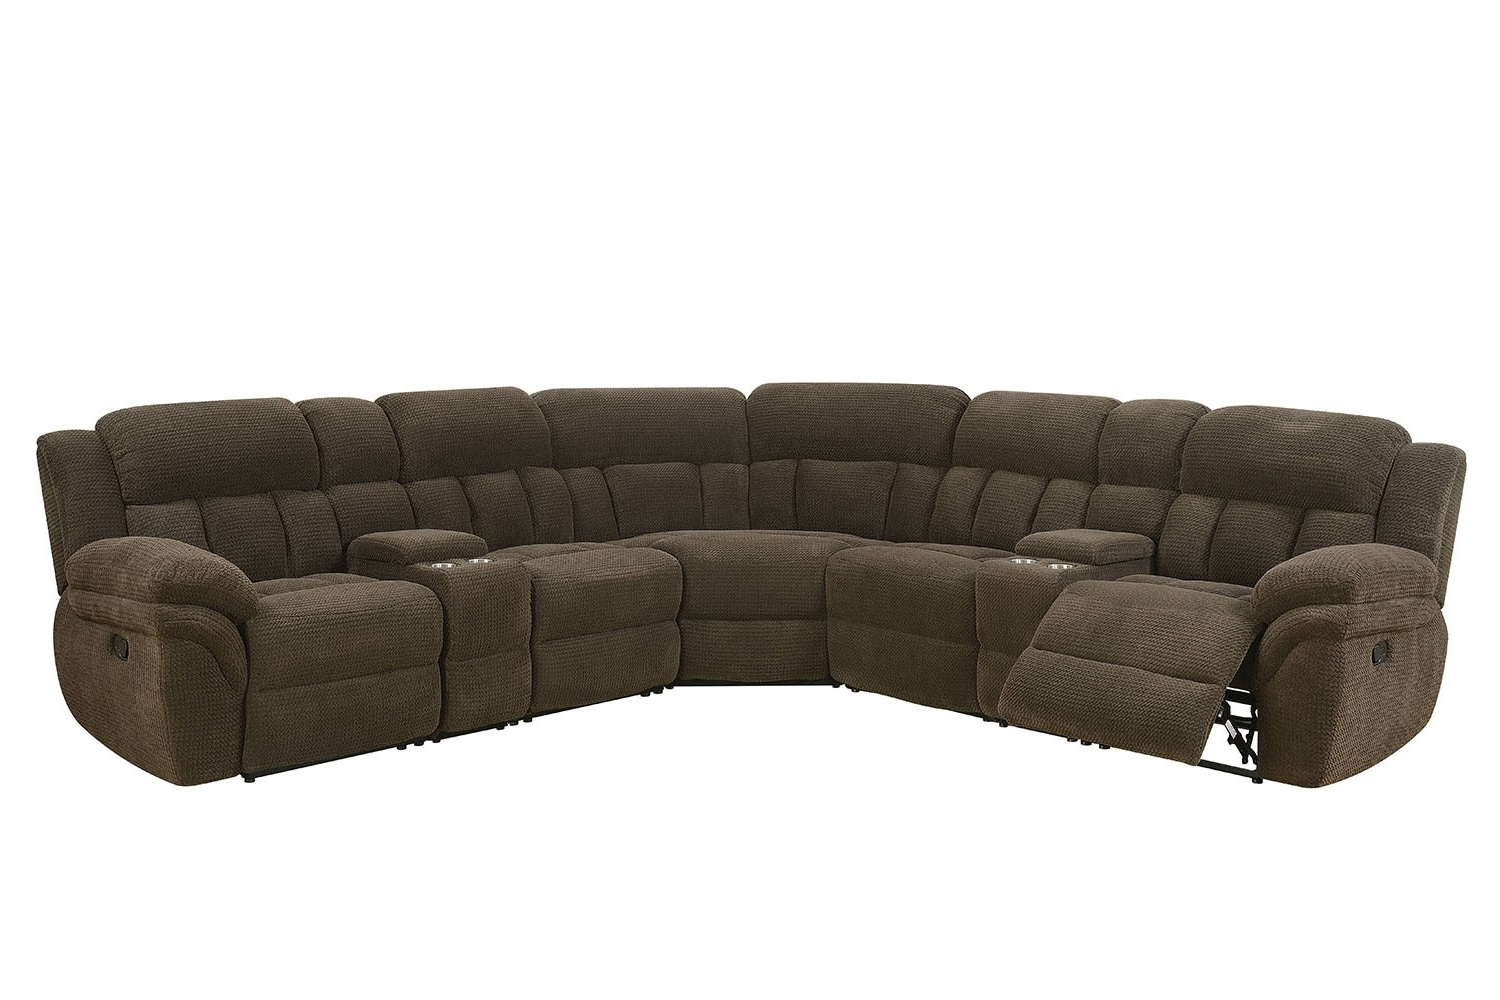 Save Mor This Holiday Season In Aspen 2 Piece Sectionals With Raf Chaise (View 17 of 20)